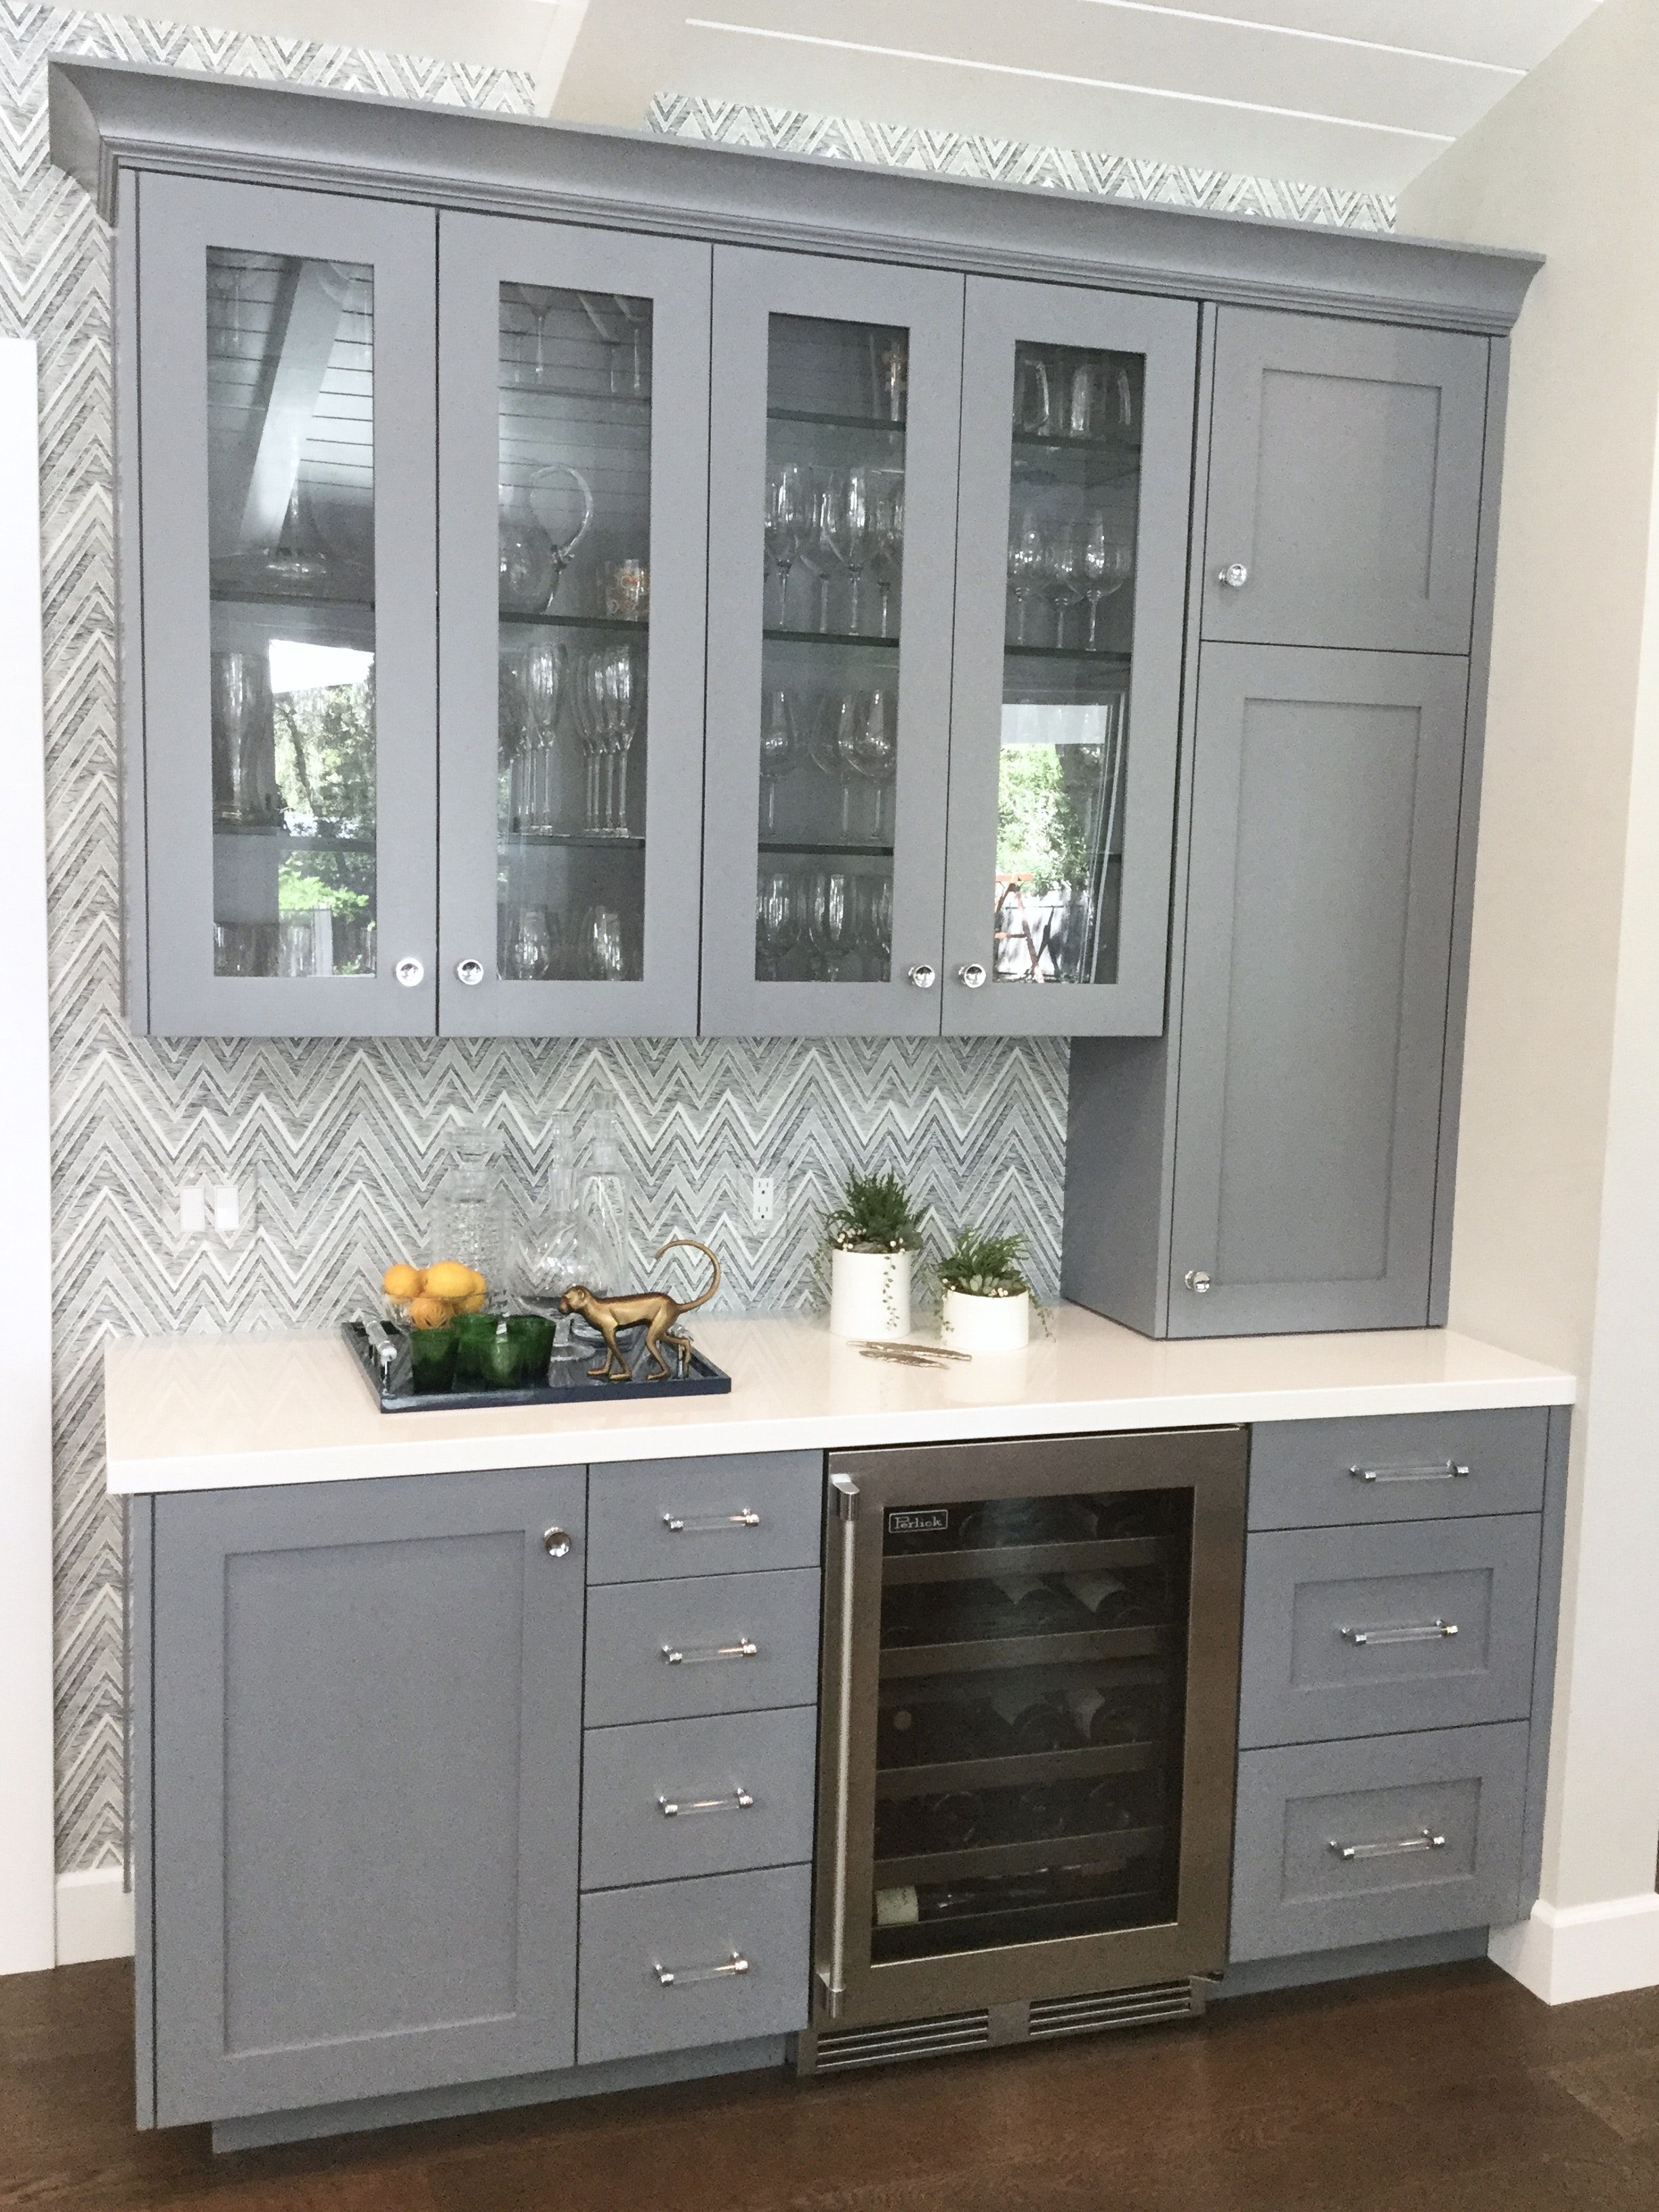 Custom Built In Bar With Grey Cabinetry And Wallpaper Backsplash